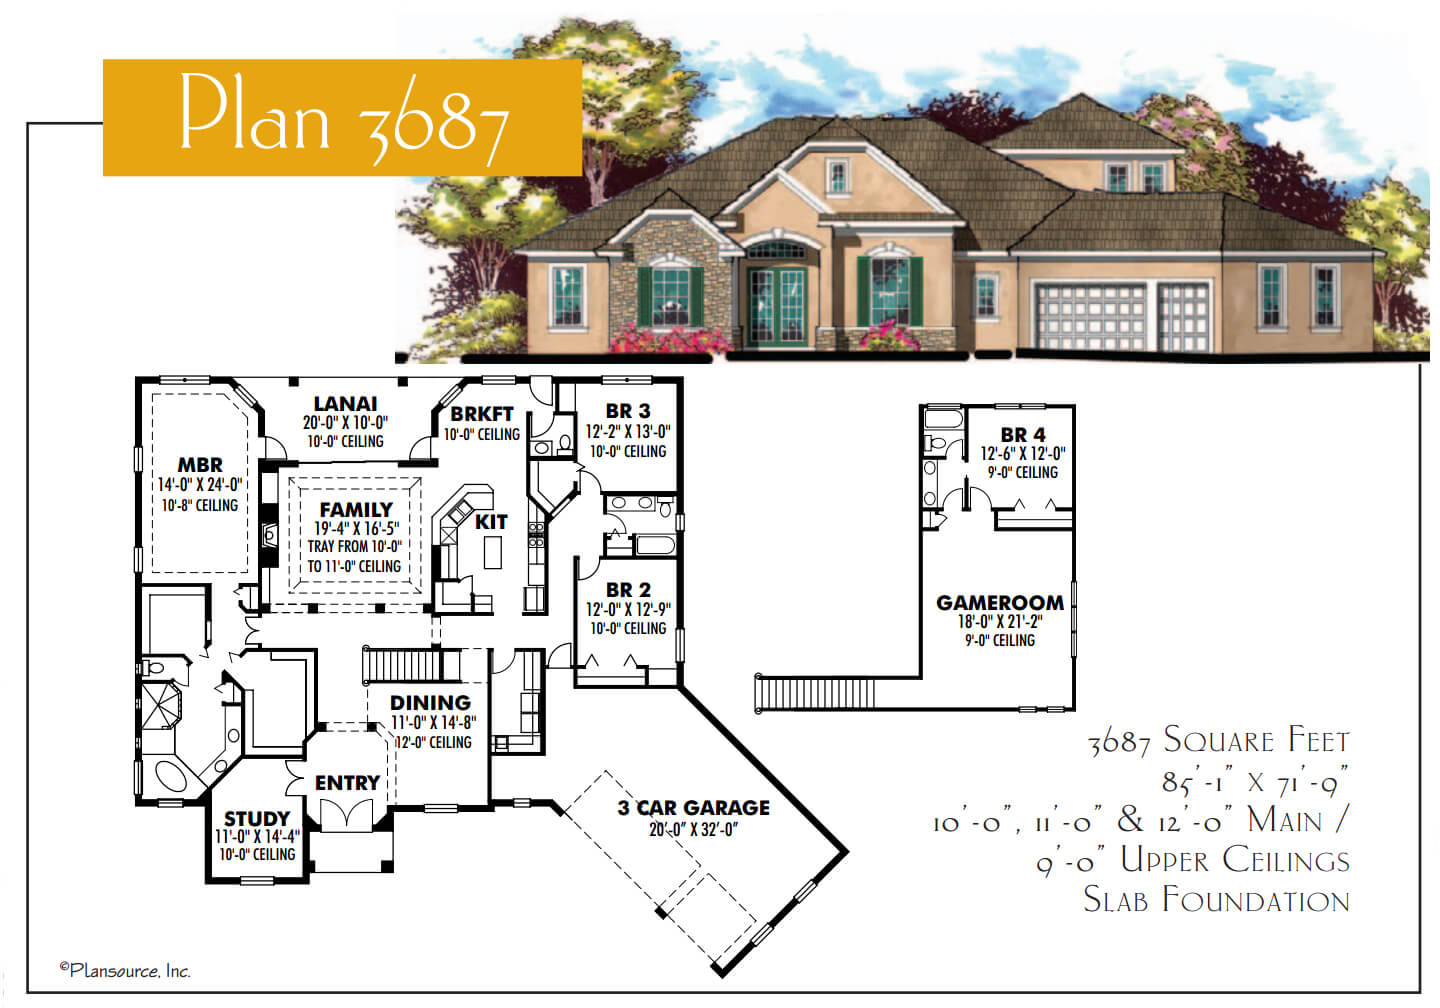 Floor Plans,3,501 SQ FT TO 4,000 SQ FT,1102